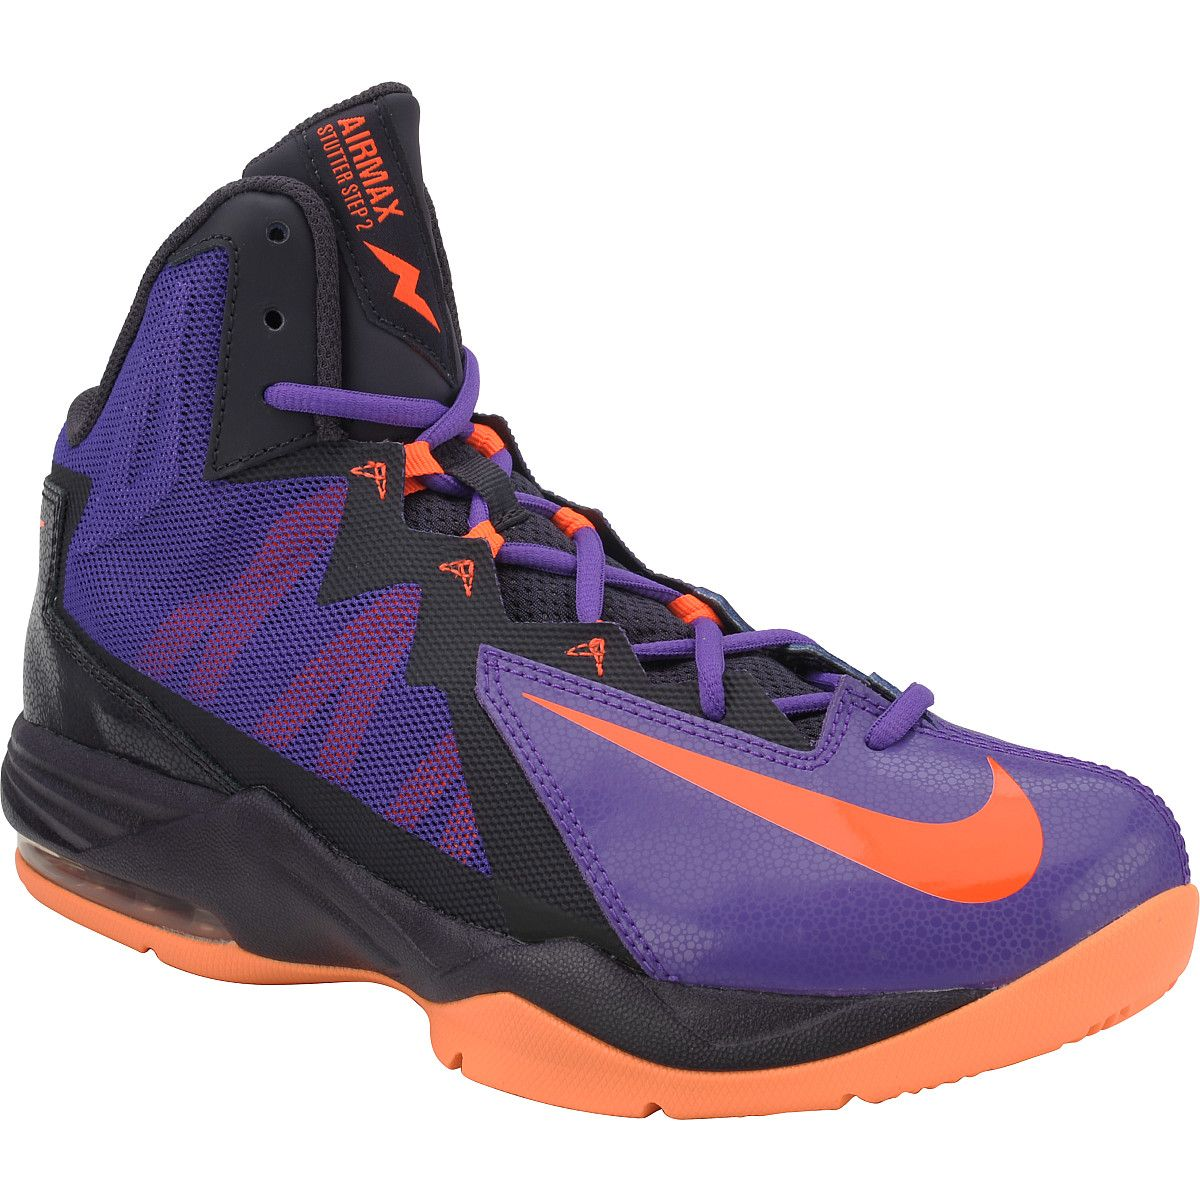 finest selection f3bb3 a3559 Fake  em out in the NIKE Air Max Stutter Step 2 men s mid-cut basketball  shoes. The split-toe design enhances your foot s natural flexibility so you  can ...